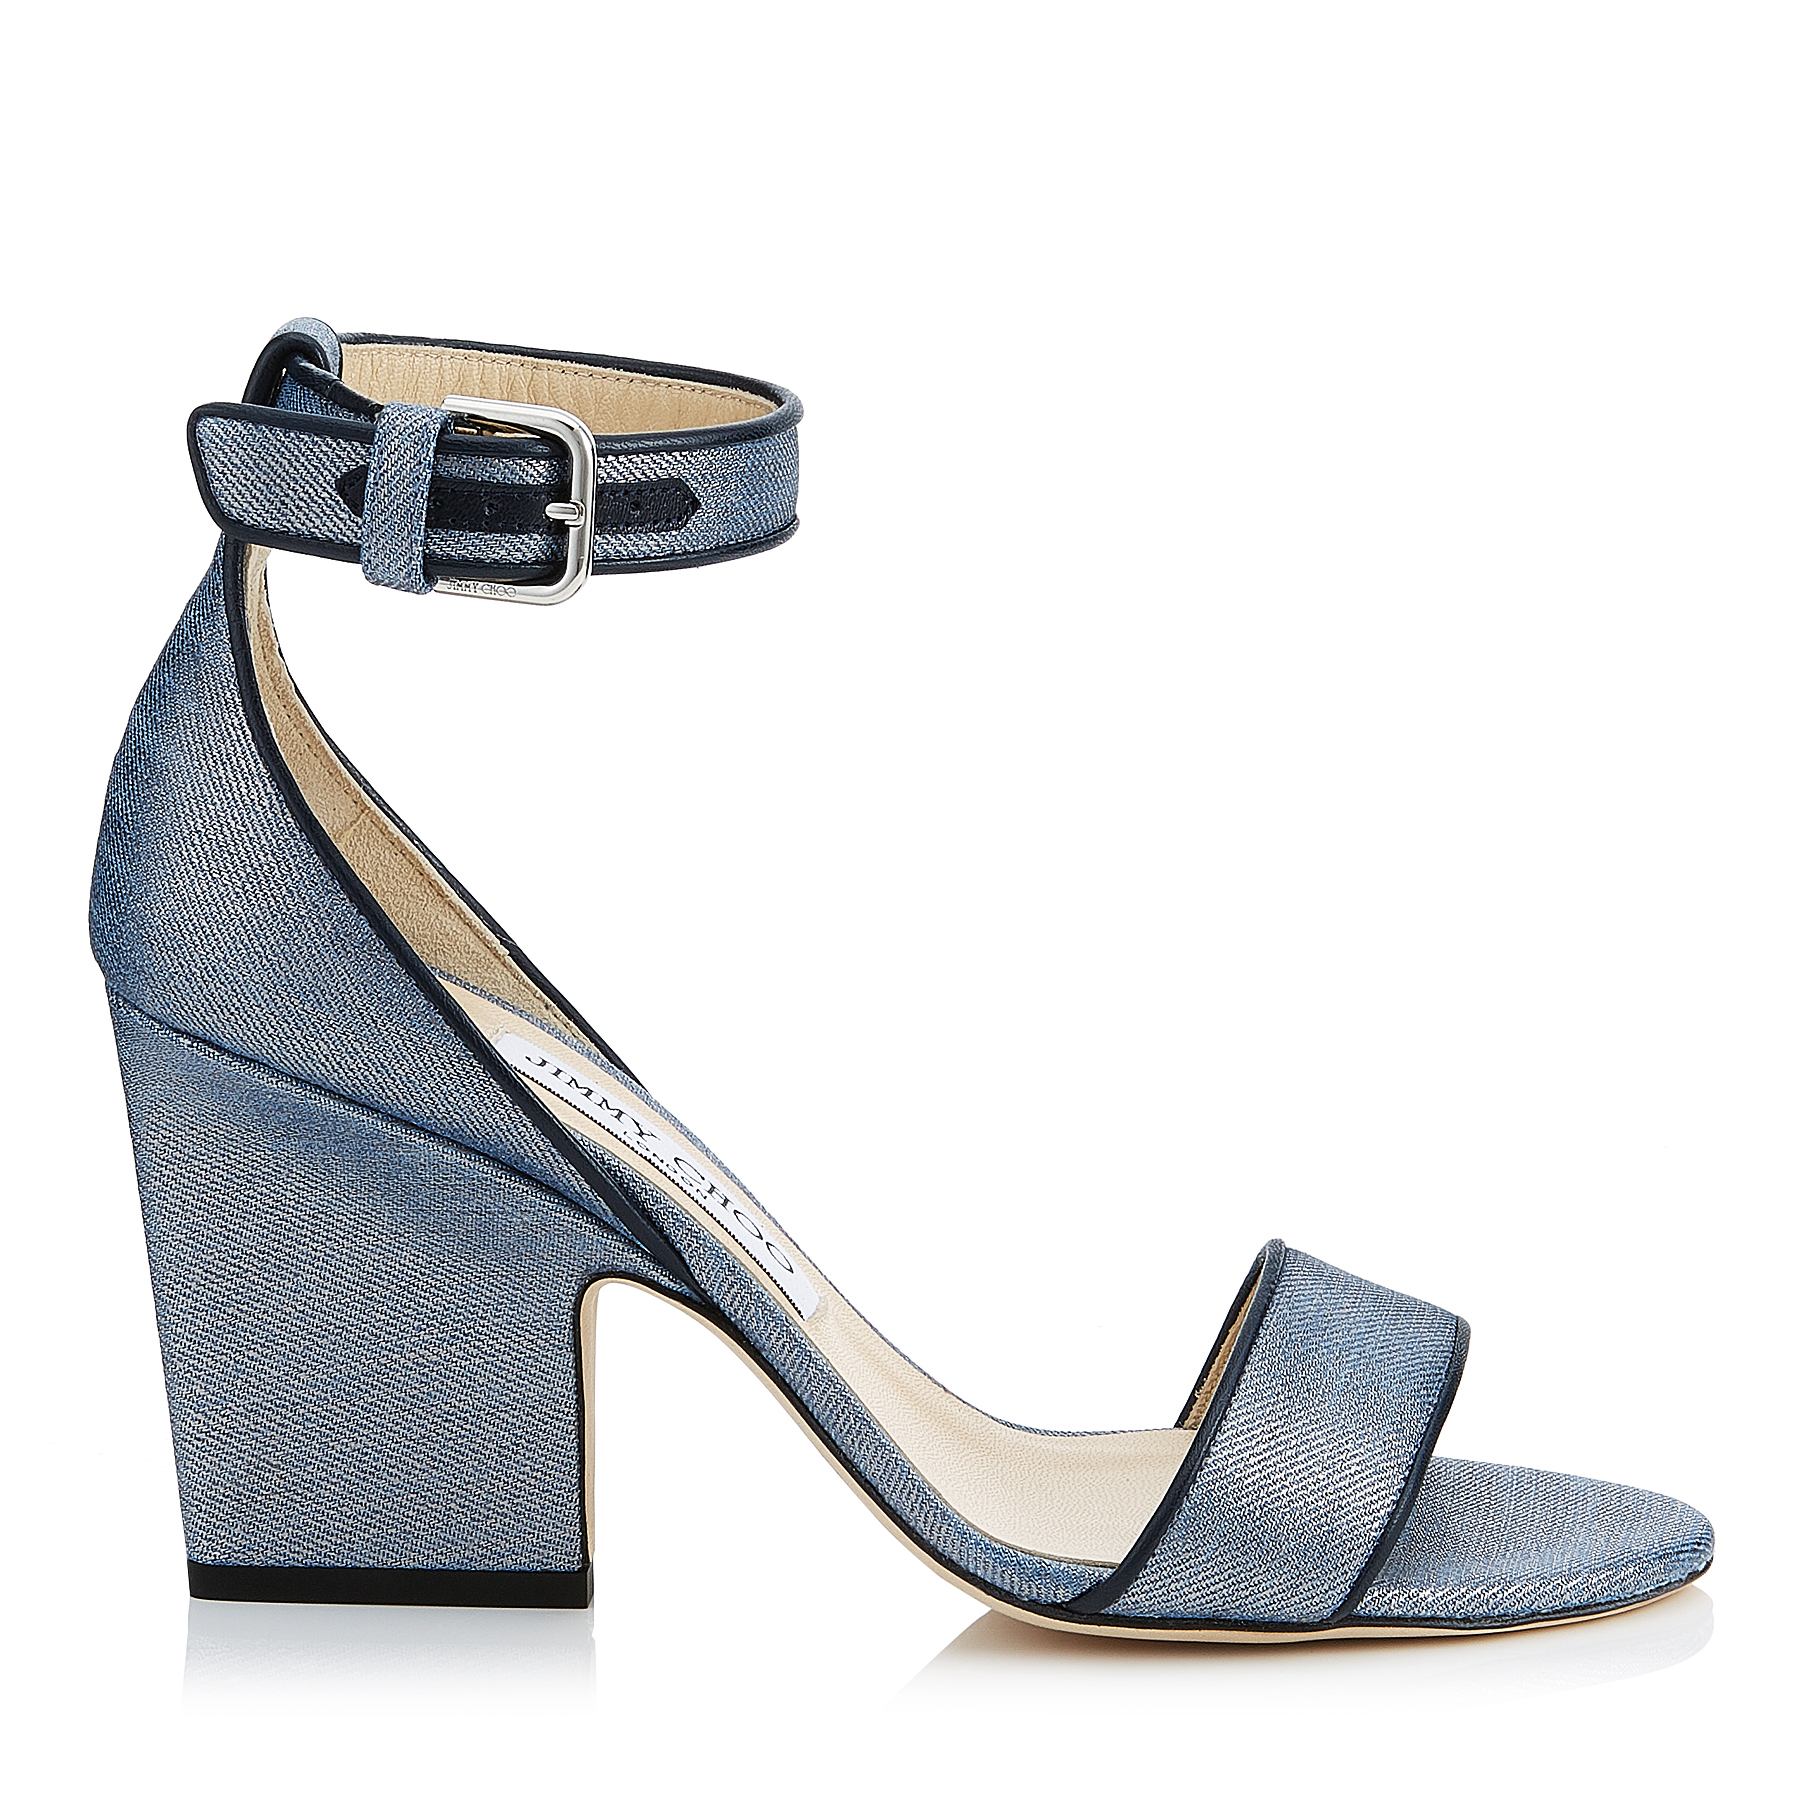 EDINA 85 Dusk Blue Metallic Denim Fabric Wedges by Jimmy Choo